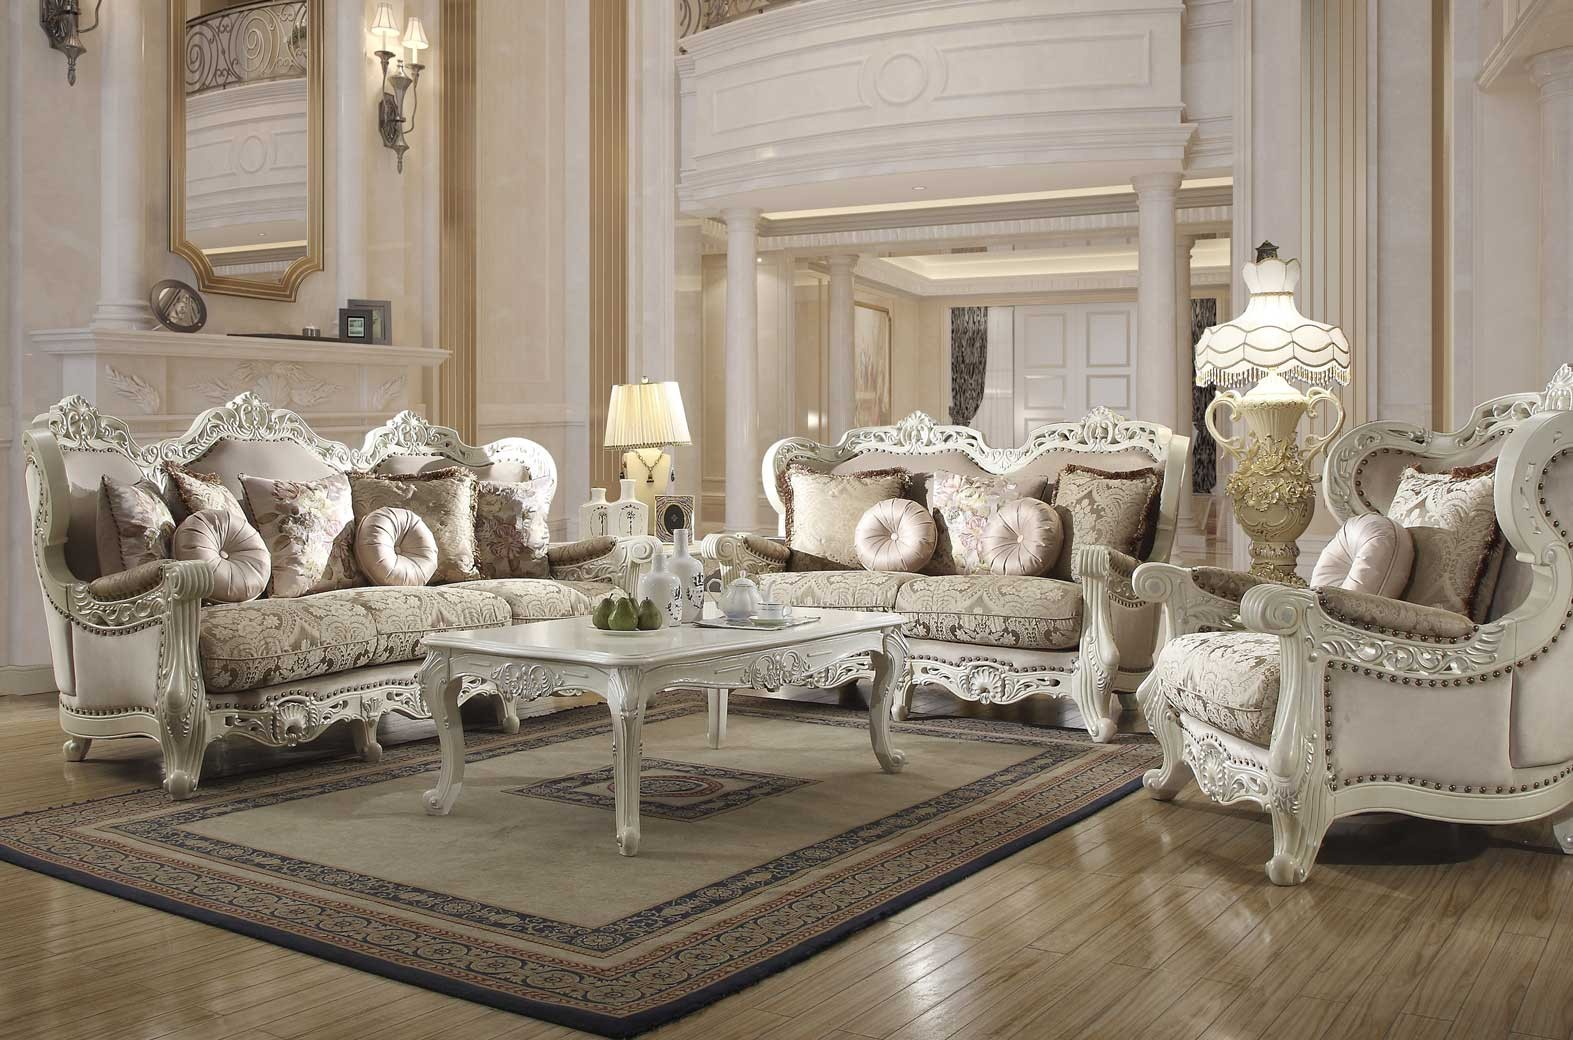 HD 2657 Homey Design upholstery living room set Victorian, European &  Classic design Sofa Set